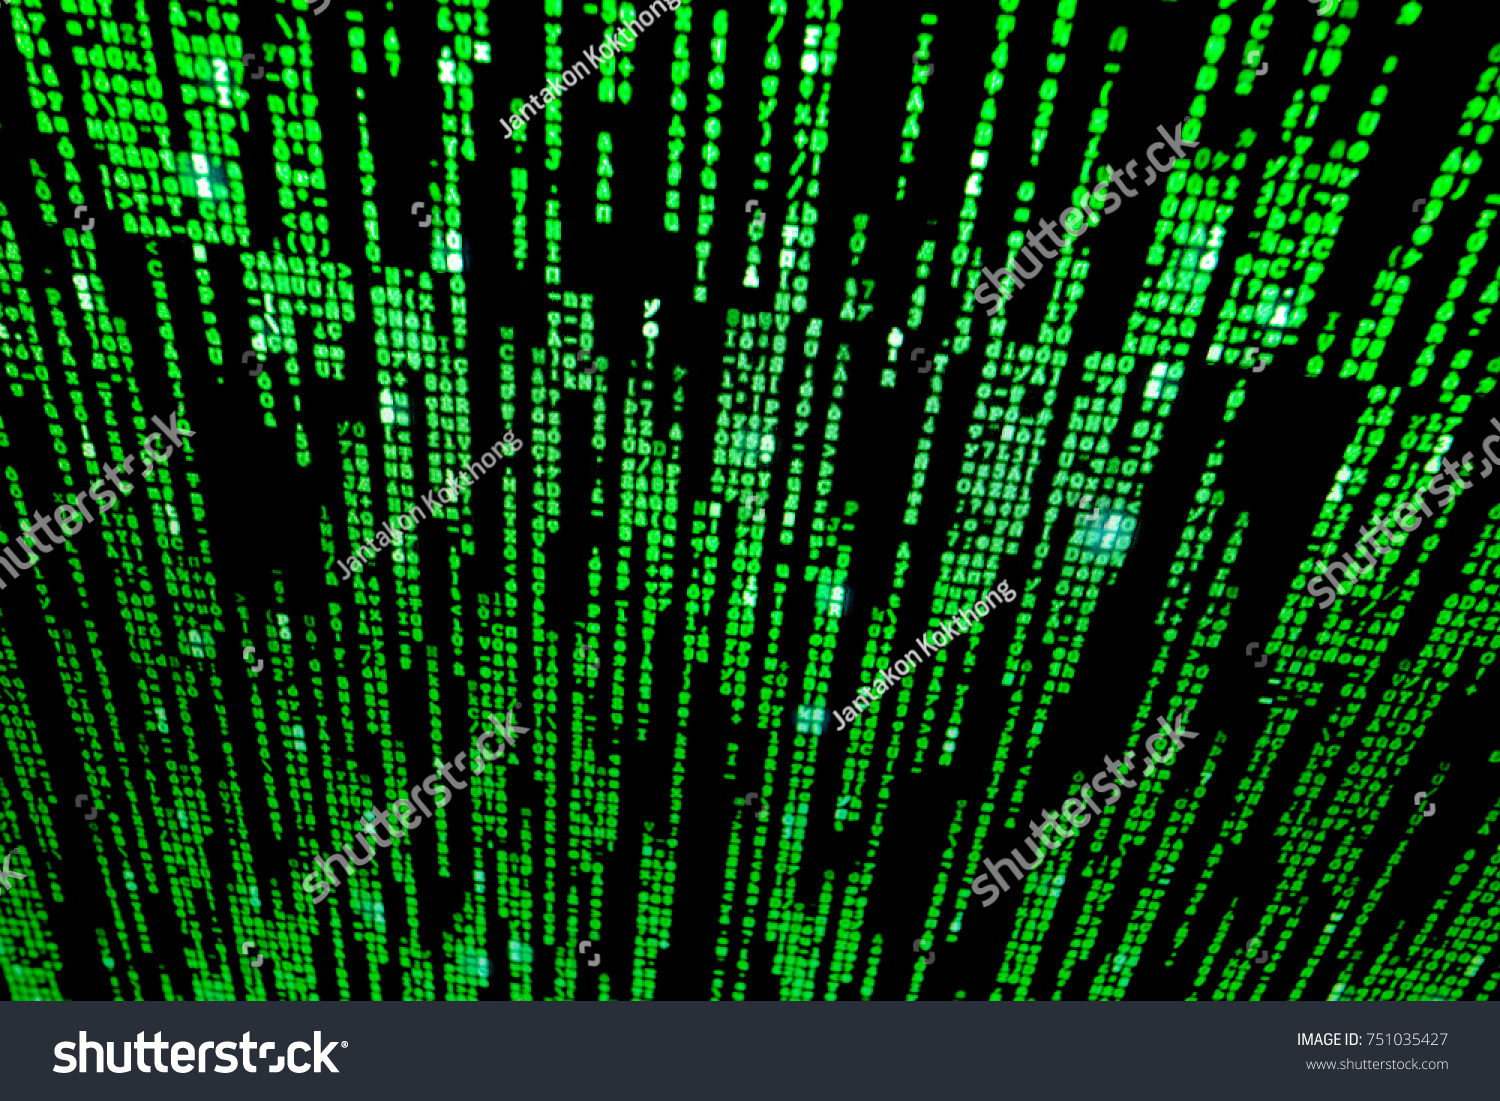 Background Matrix Style Computer Virus Hacker Stock Photo (Royalty ...